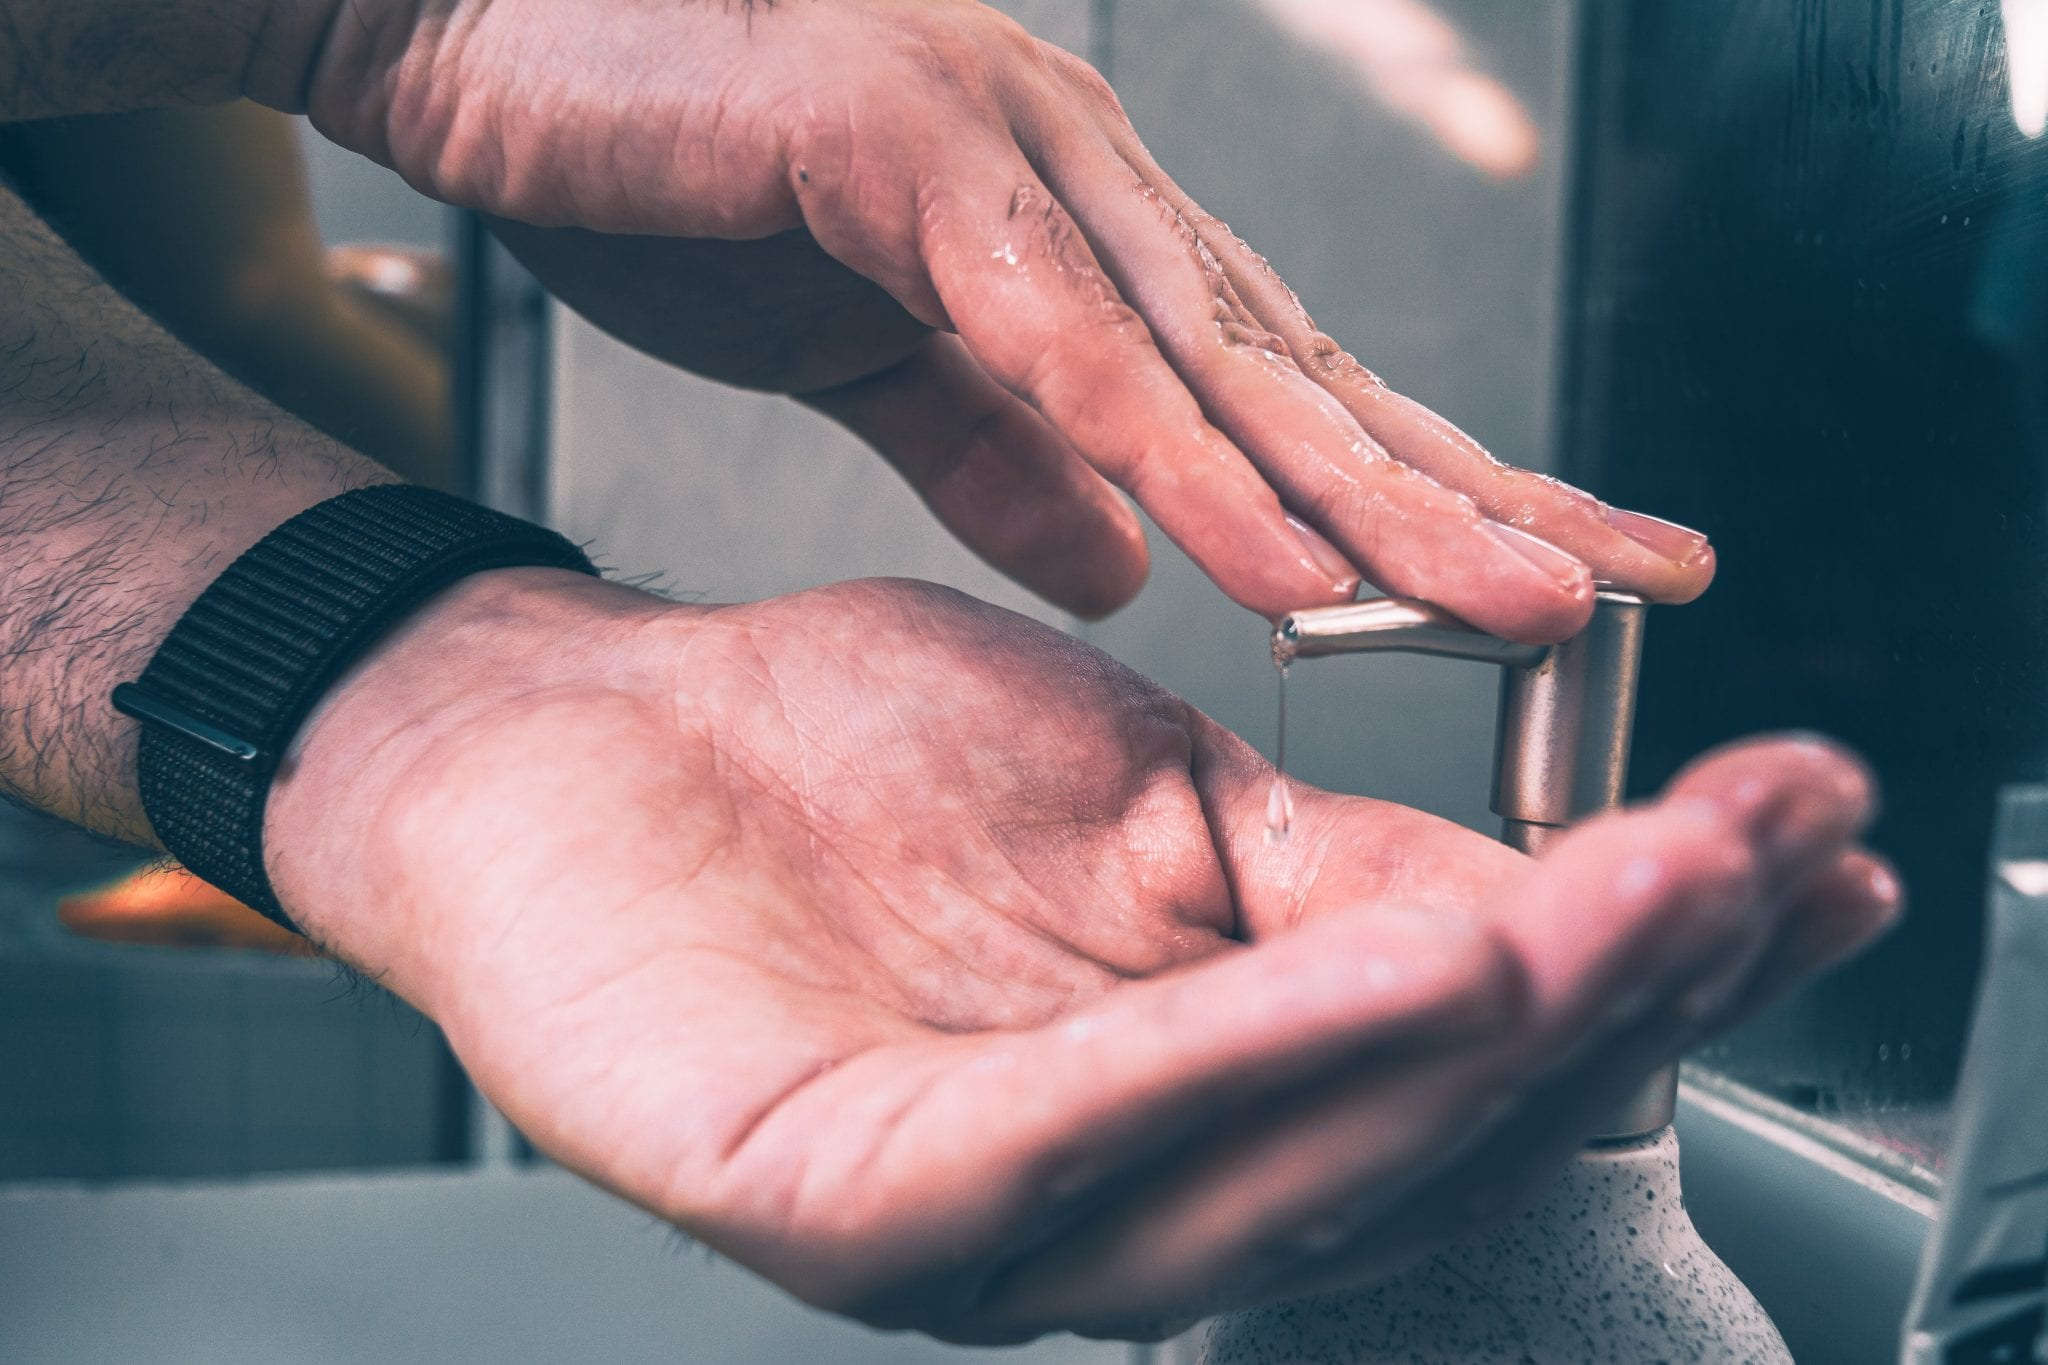 Masculine hands applying soap, photo by Christine Sandu via Unsplash